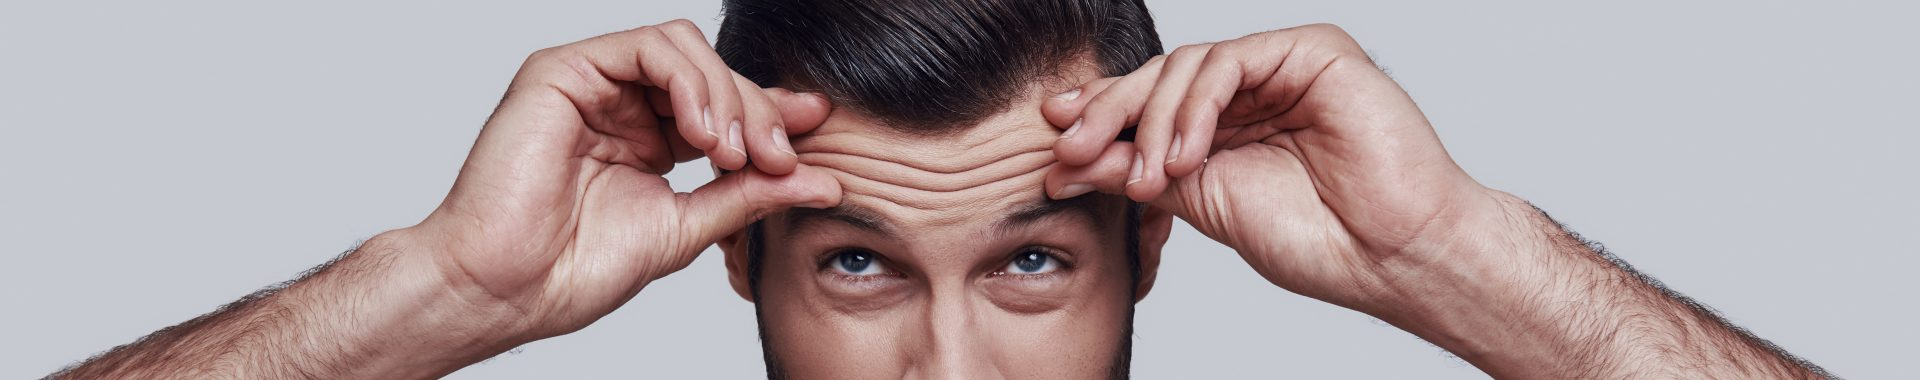 male model demonstrates forehead lines and ageing concerns